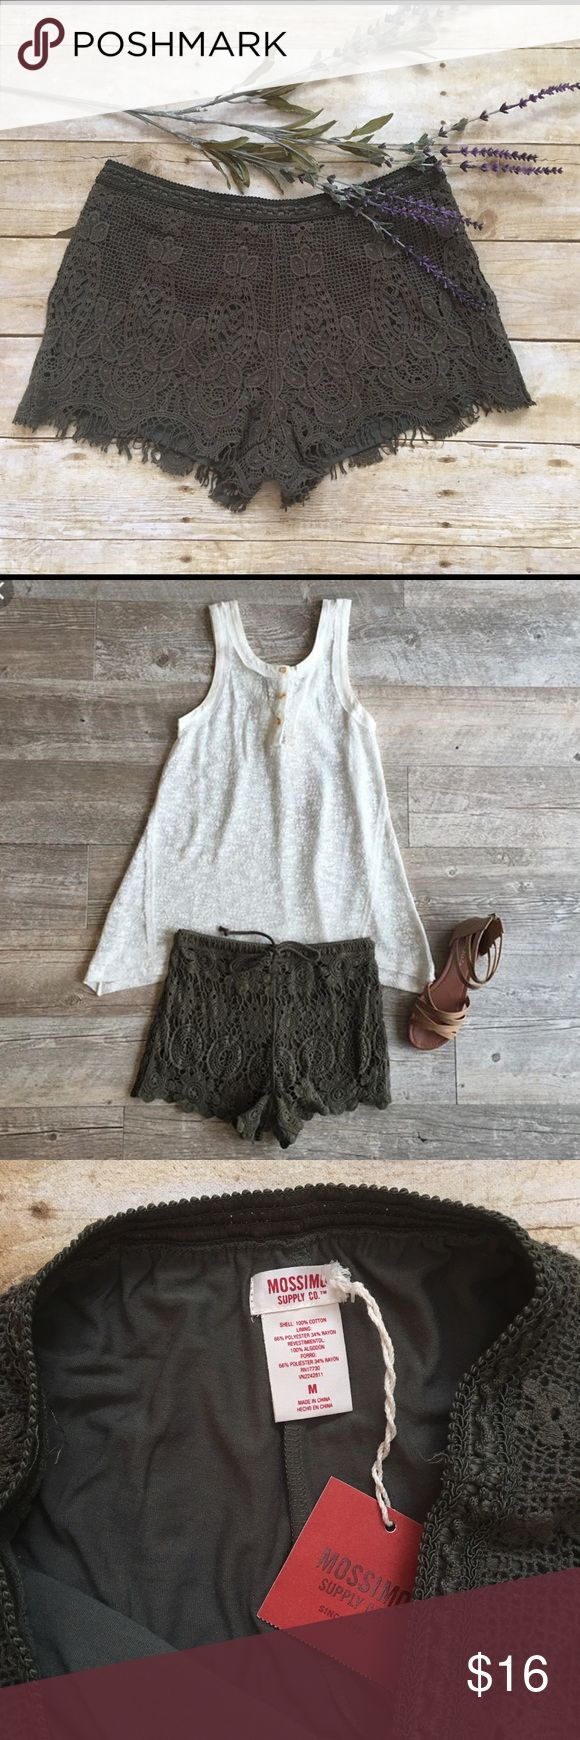 MOSSIMO Olive Green Crochet Shorts Delicate and Sweet Olive green Crochet shorts with elastic waist band and lined! Pull on style. 3.5in length. A seriously cute summer staple! New with Tags! (Second image is a styling image not of actual shorts. )💕 Mossimo Supply Co Shorts